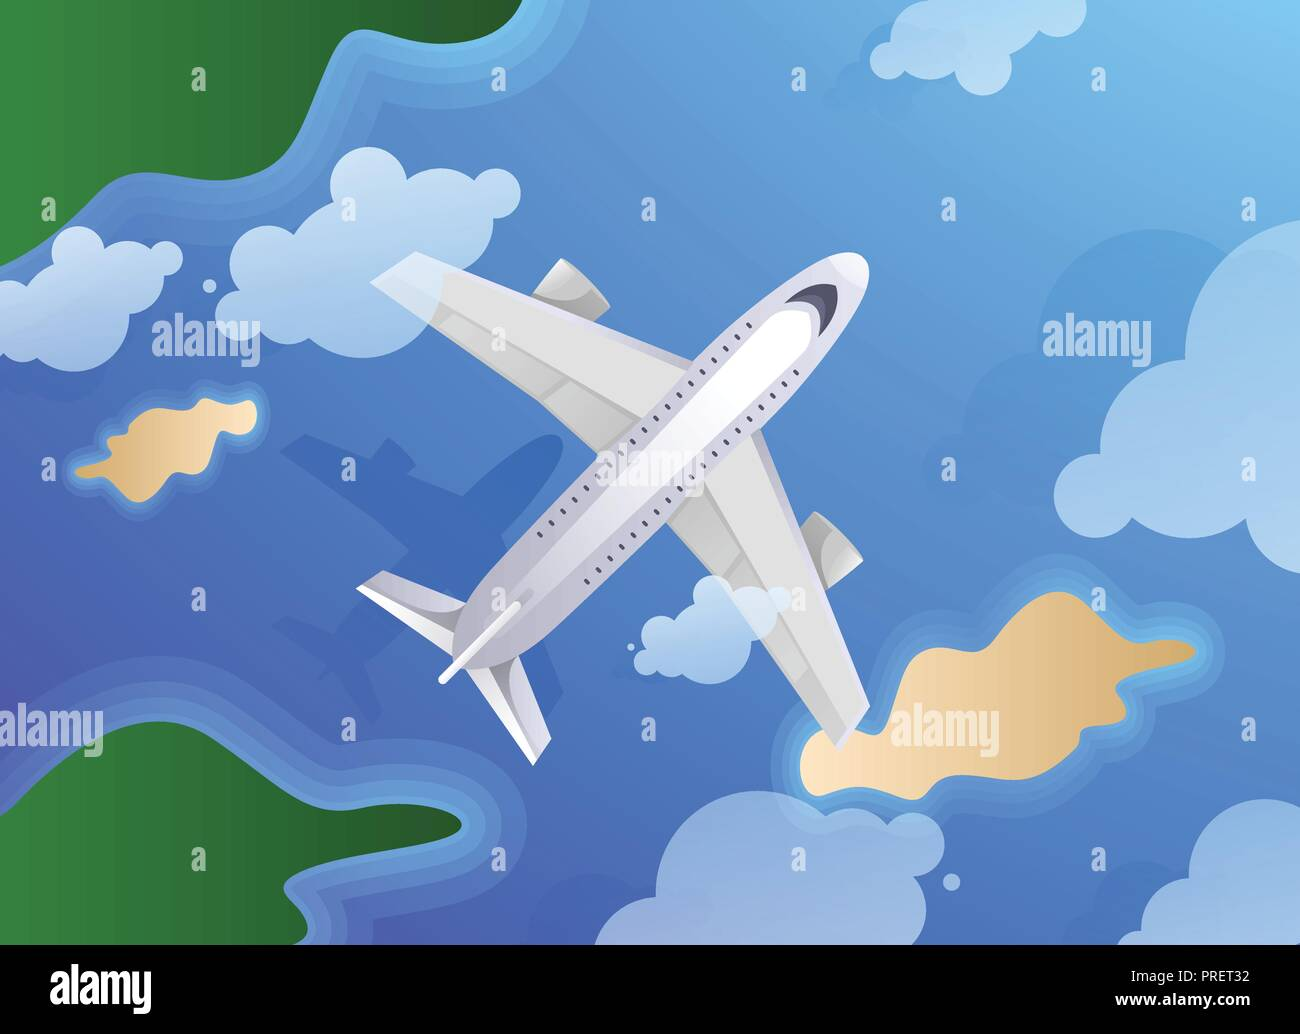 Top view of plane or jet aircraft flying over island and ocean. Summer travel or tourism agency theme - Stock Vector